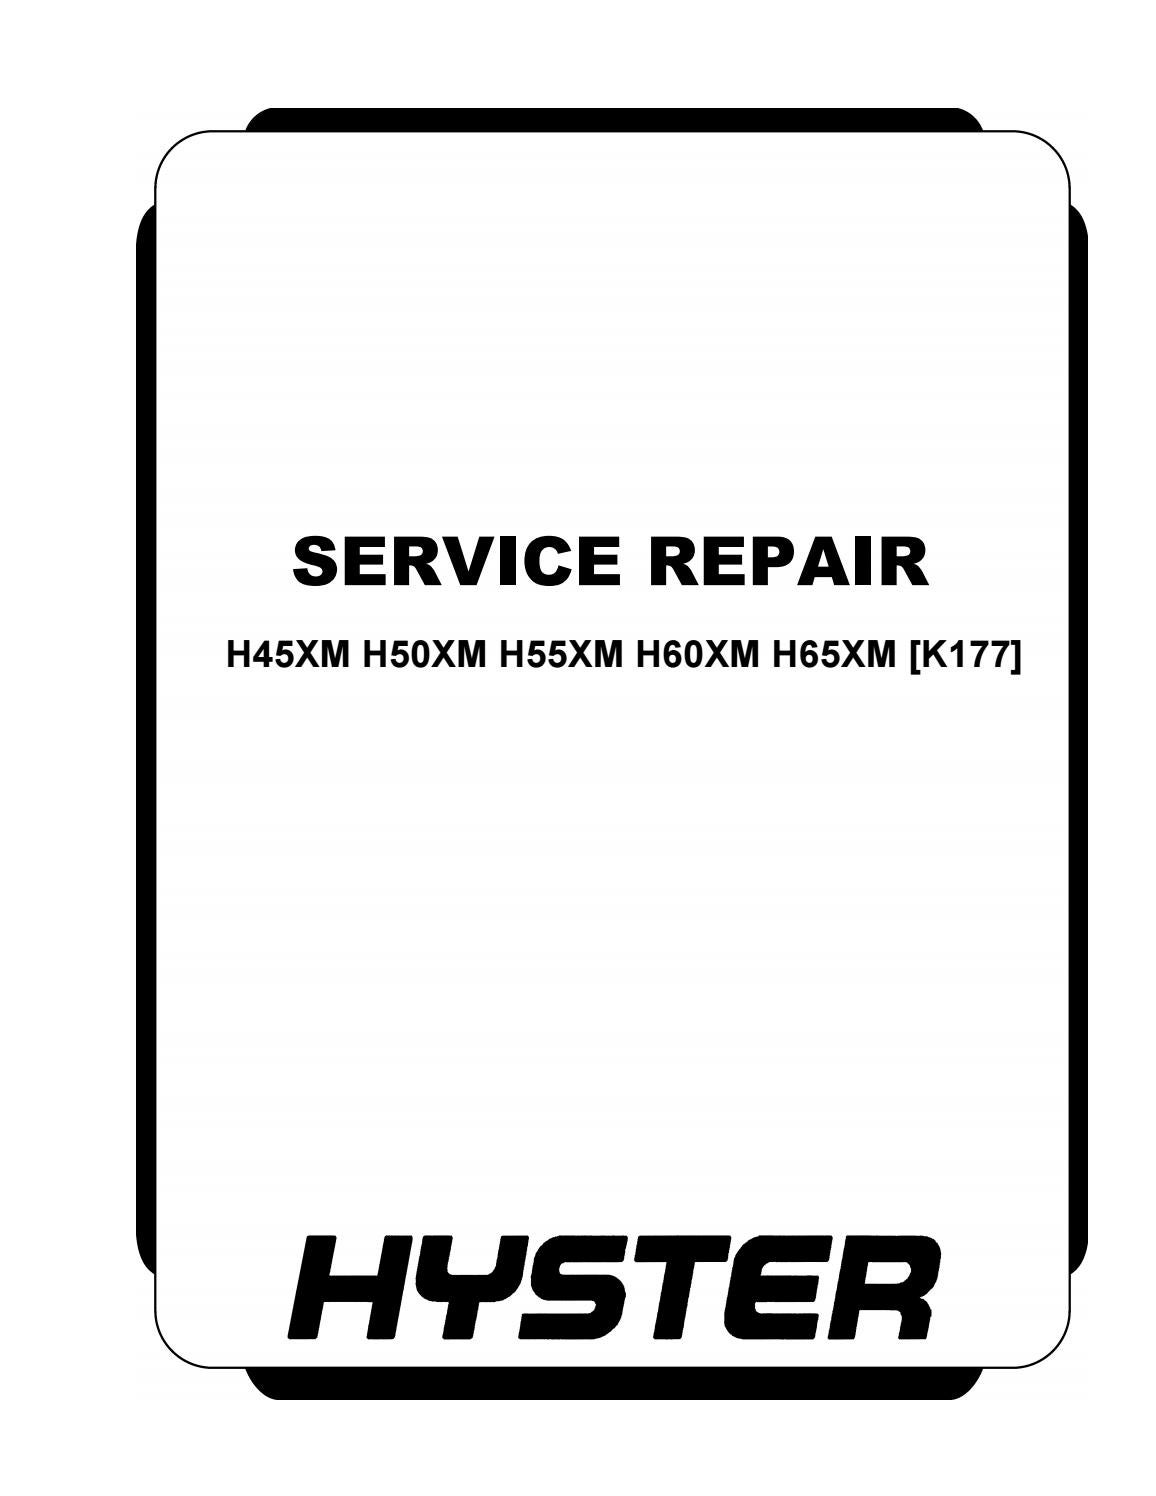 Hyster (K177) H65XM Forklift Service Repair Manual by 163114103 - issuu | Hyster 65 Forklift Wiring Diagram |  | Issuu